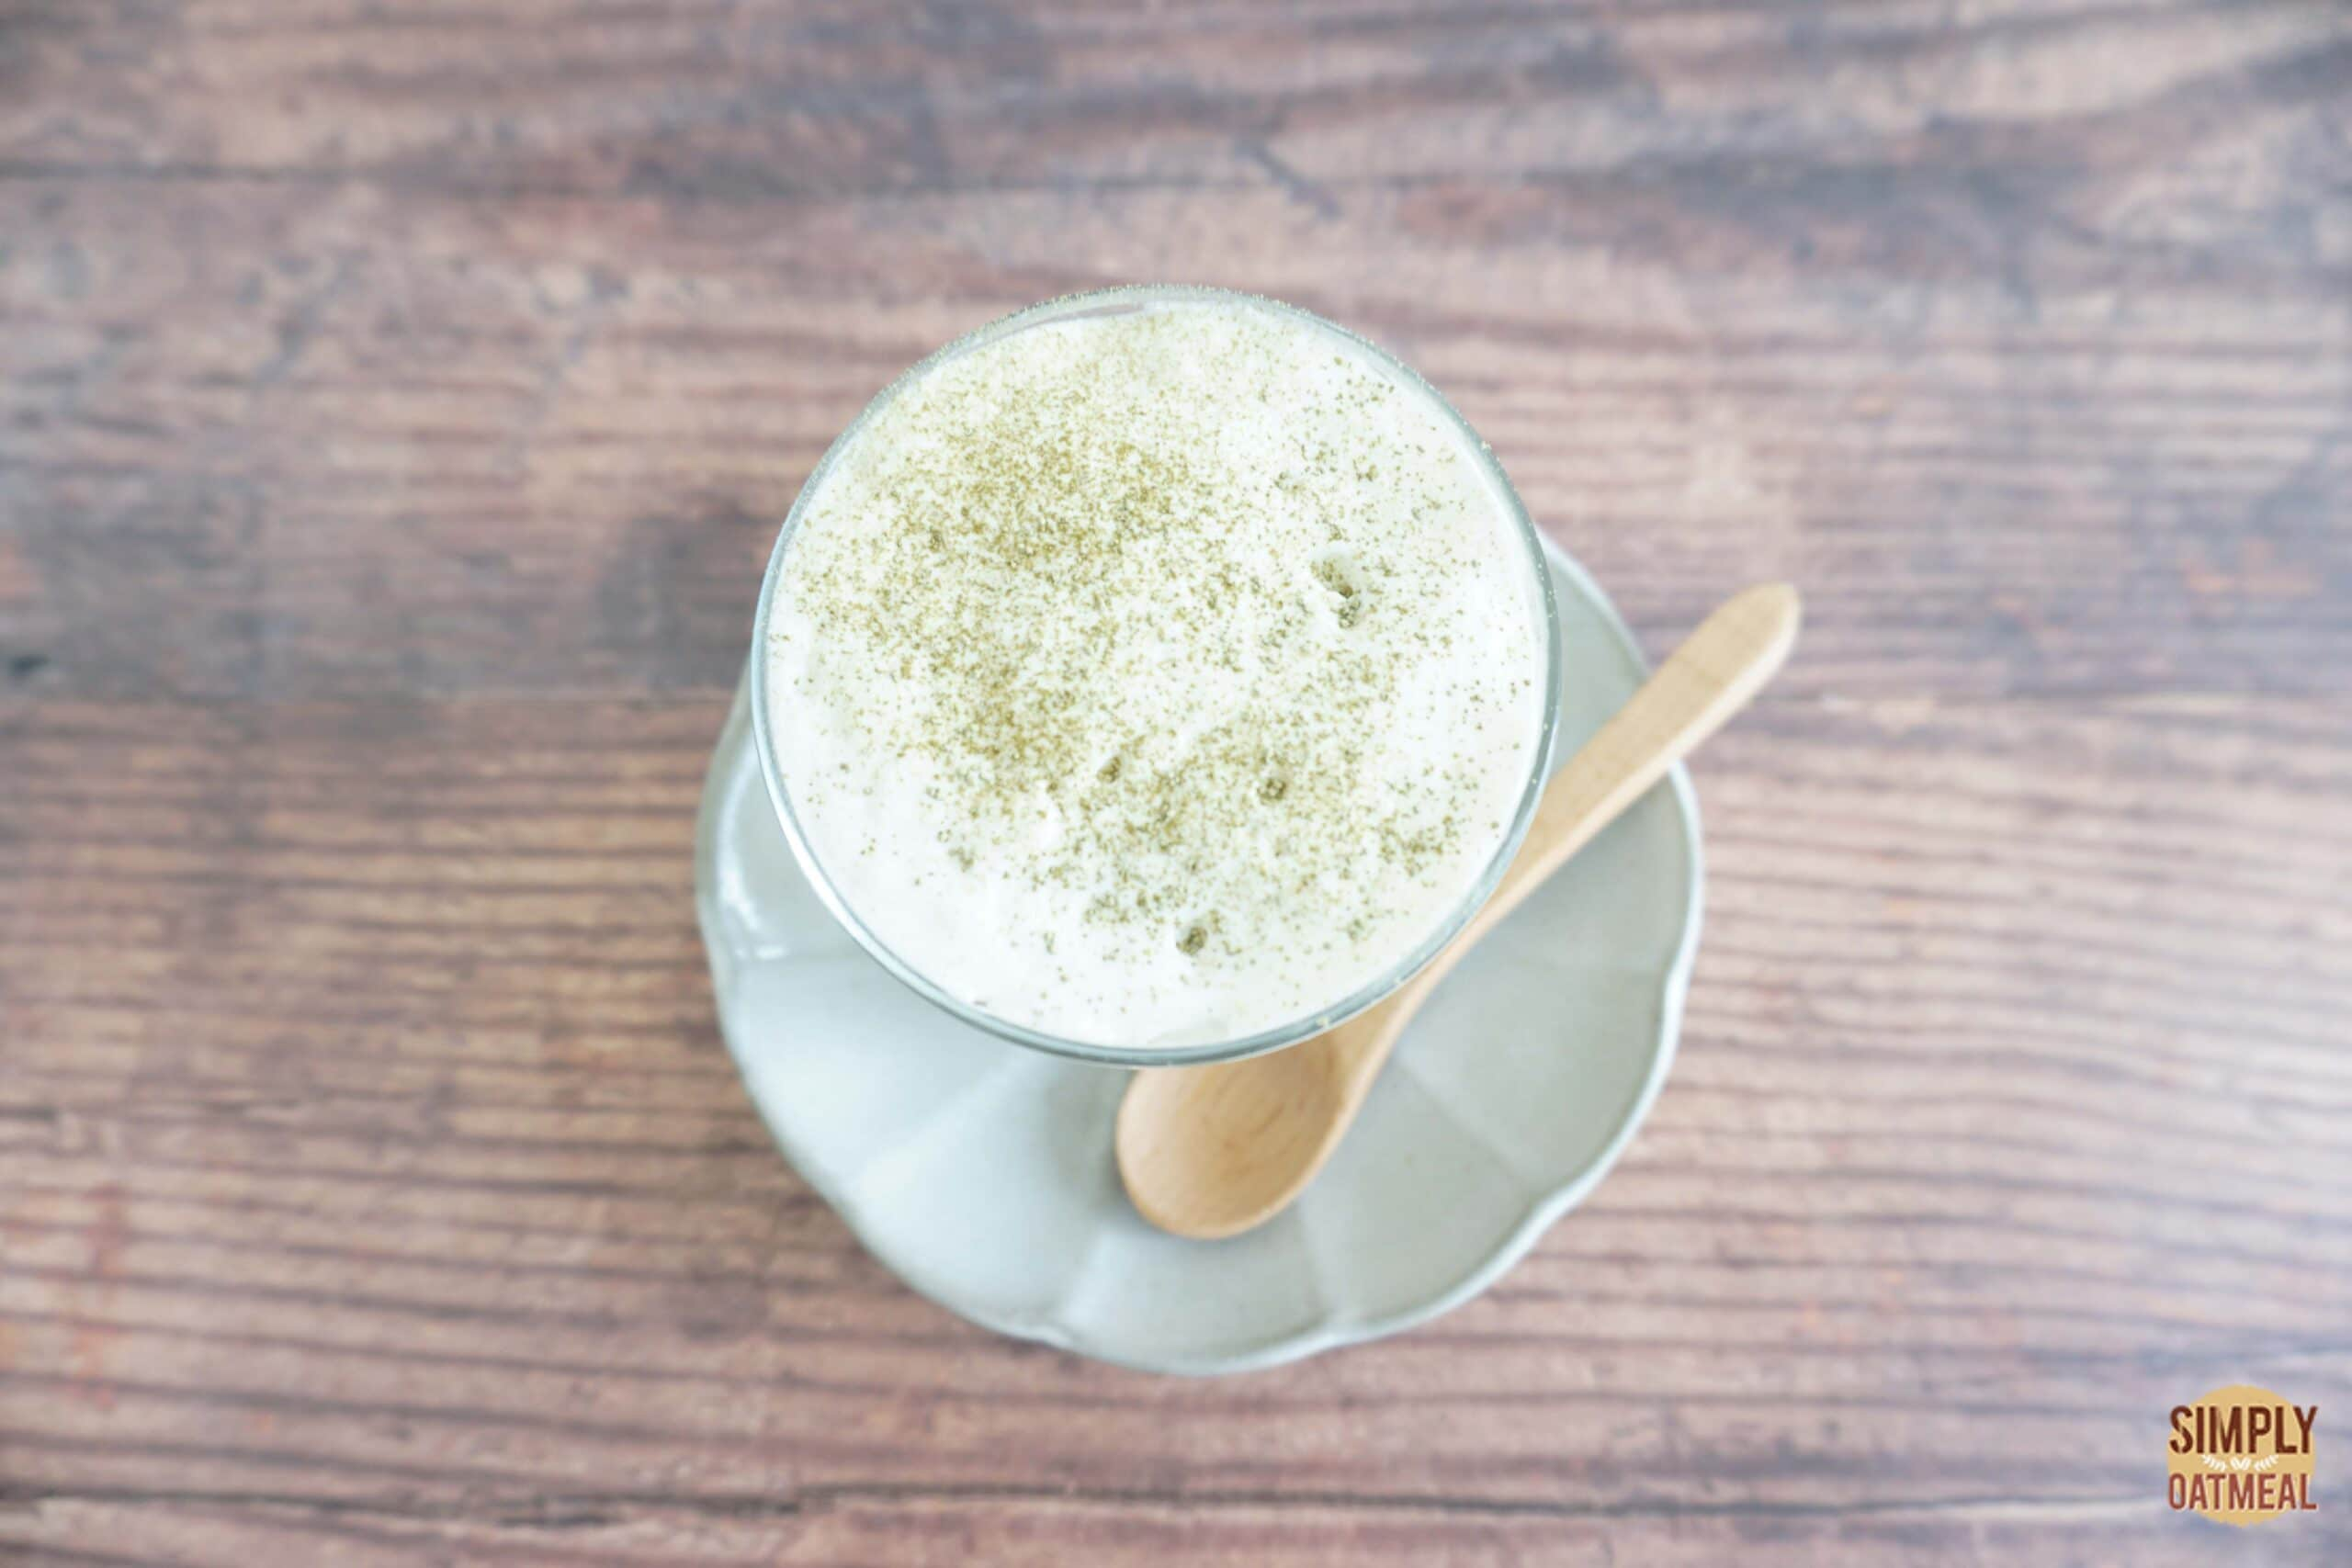 Green tea latte overnight oats topped with warm milk froth and matcha powder.